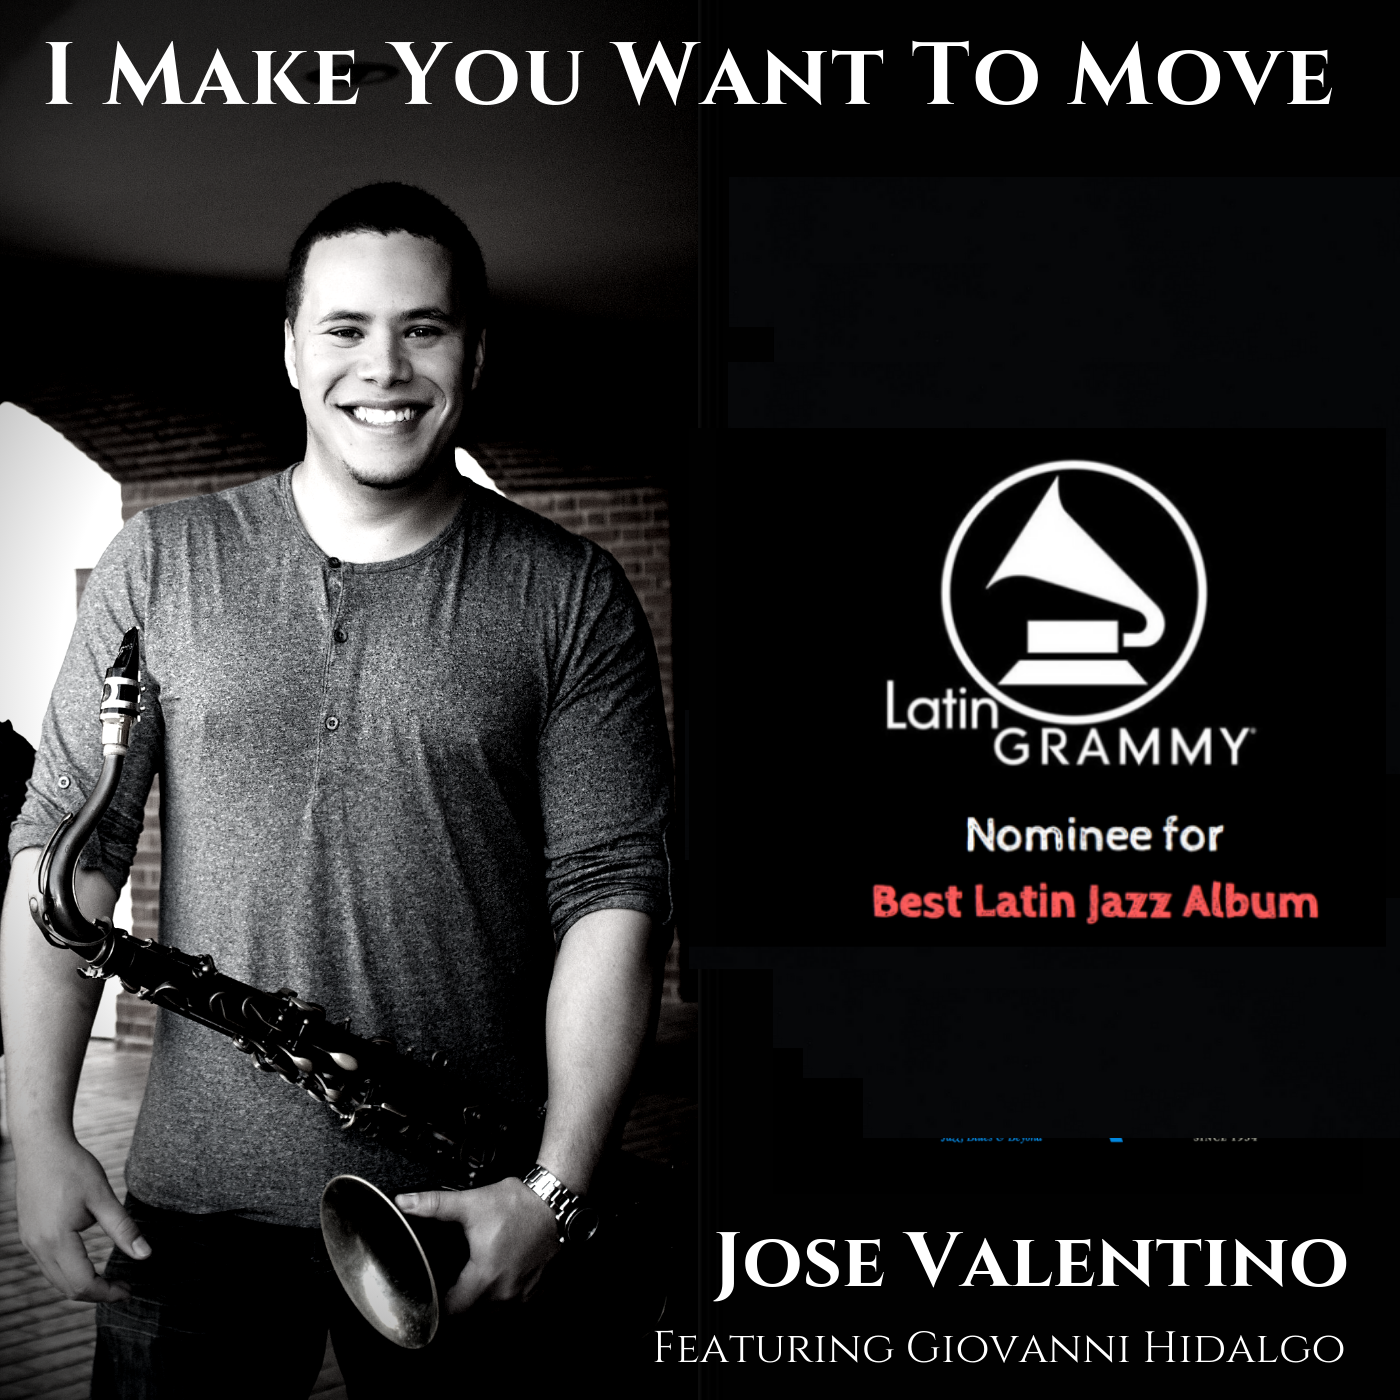 Latin GRAMMY ®  Award Nominated for Best Latin Jazz Album of The Year in 2015. This album is a vibrant piece of work that features dance music from Latin America, United States (pop, EDM, Funk), West Africa, and Europe combined in a ferocious manner.